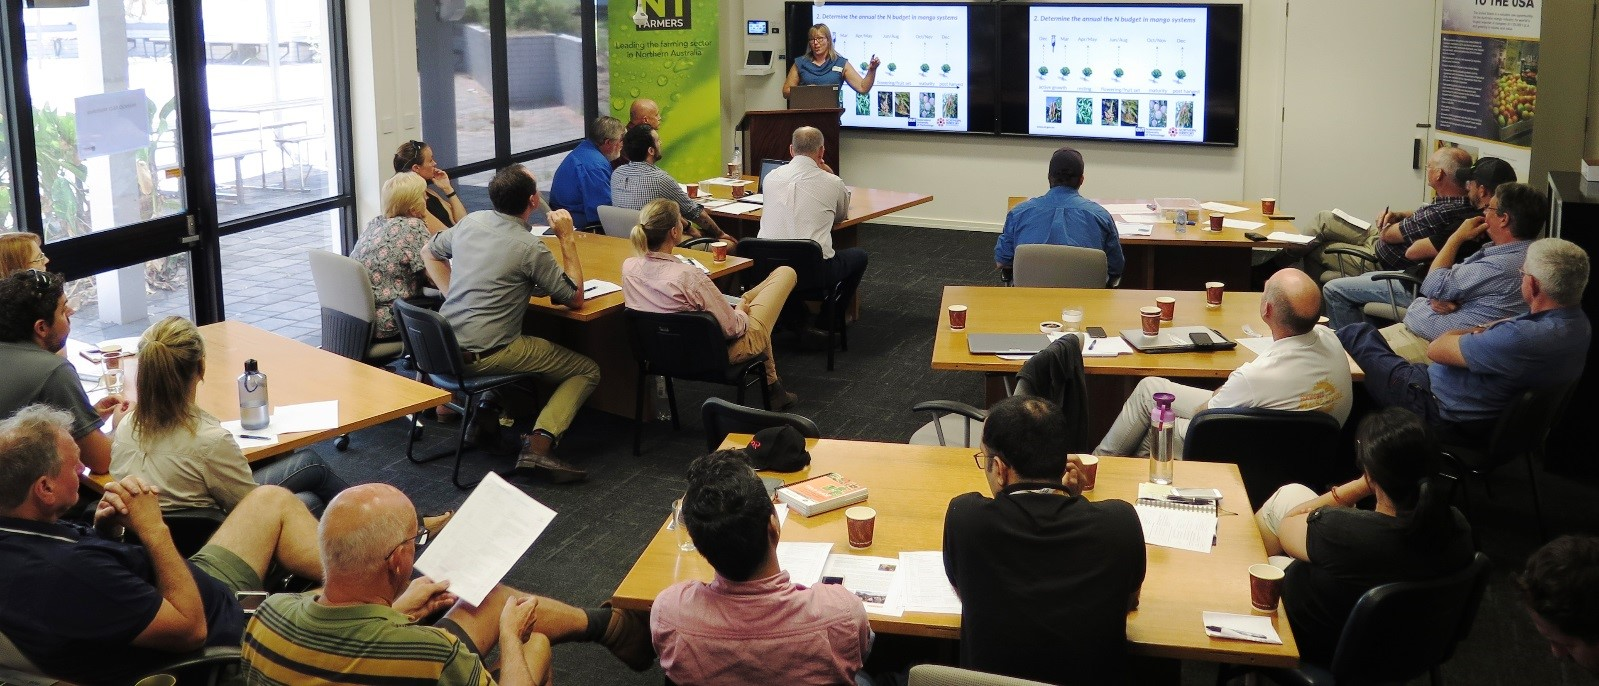 Mila Bristow presents at the NT Mango forum held in Darwin in May 2018